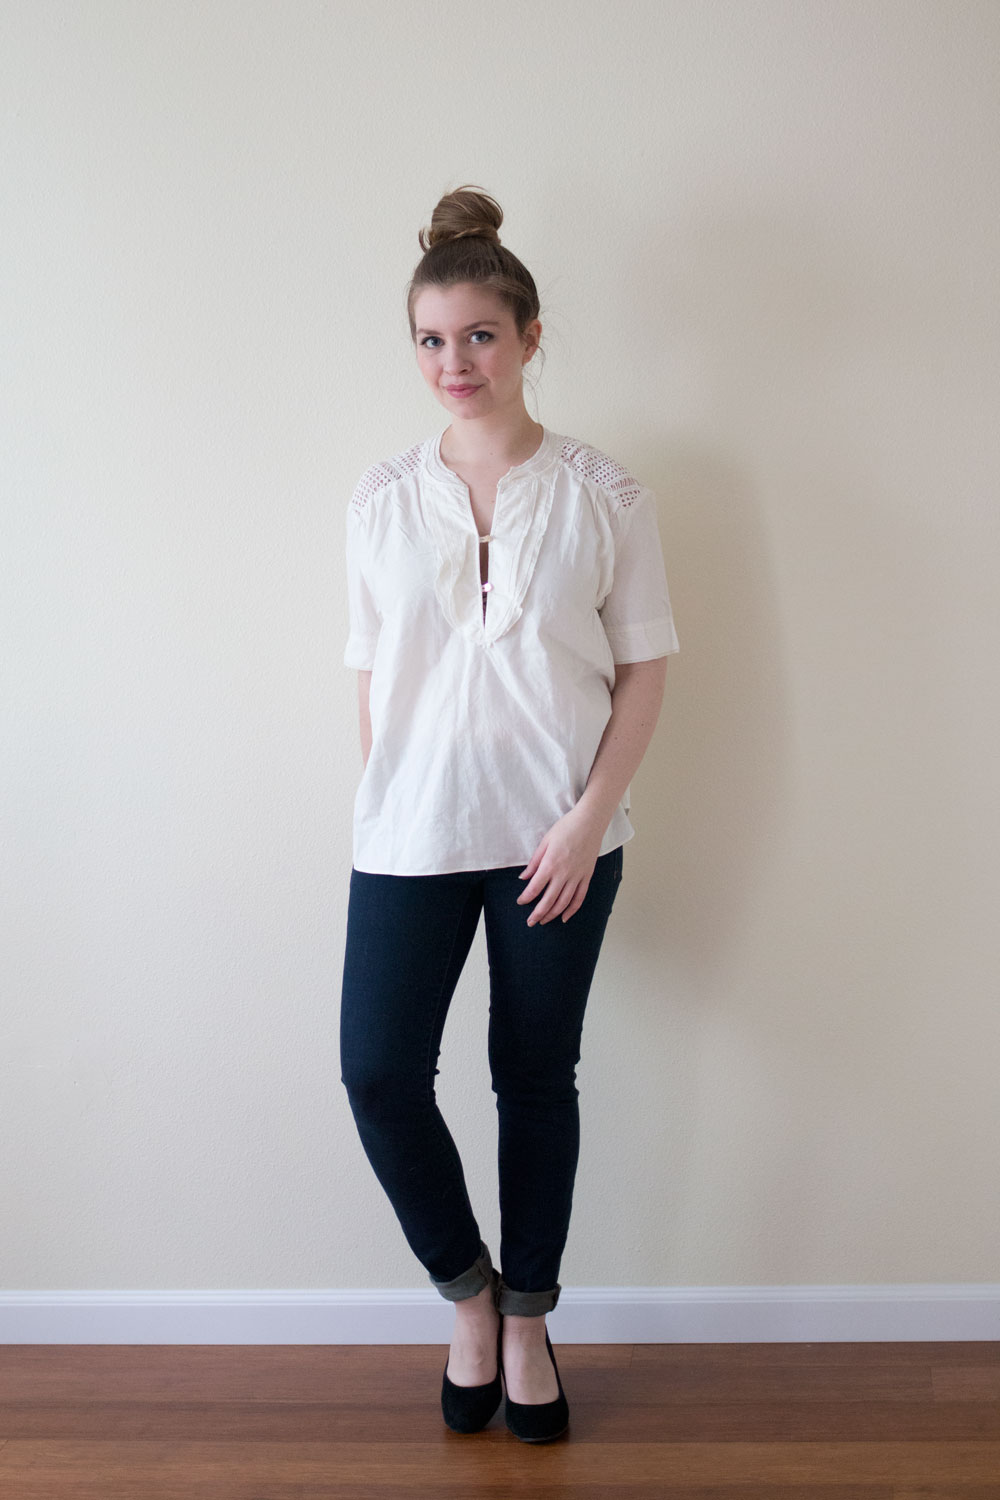 Golden Tote March 2015: Renee C Split Neck White Blouse / hellorigby seattle fashion blog